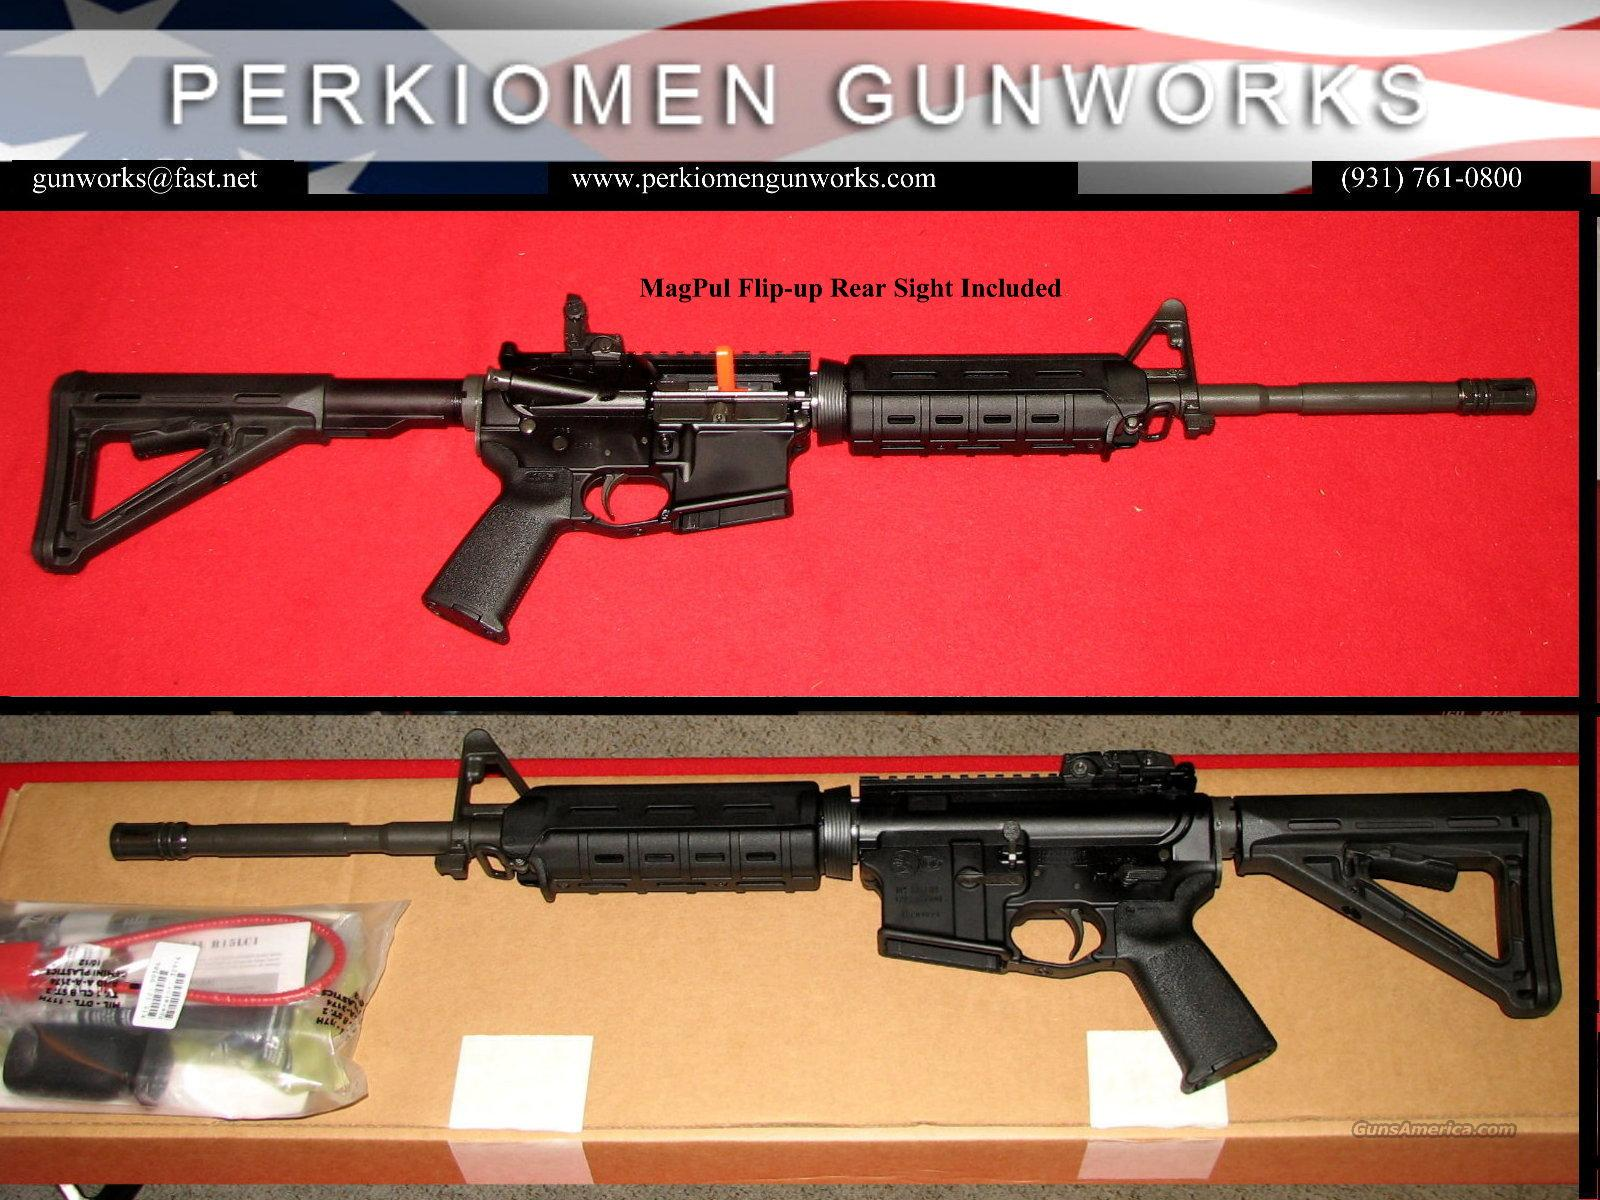 LE6920MP-B, AR15 M4 5.56 Carbine w/extras - NIB  Guns > Rifles > Colt Military/Tactical Rifles